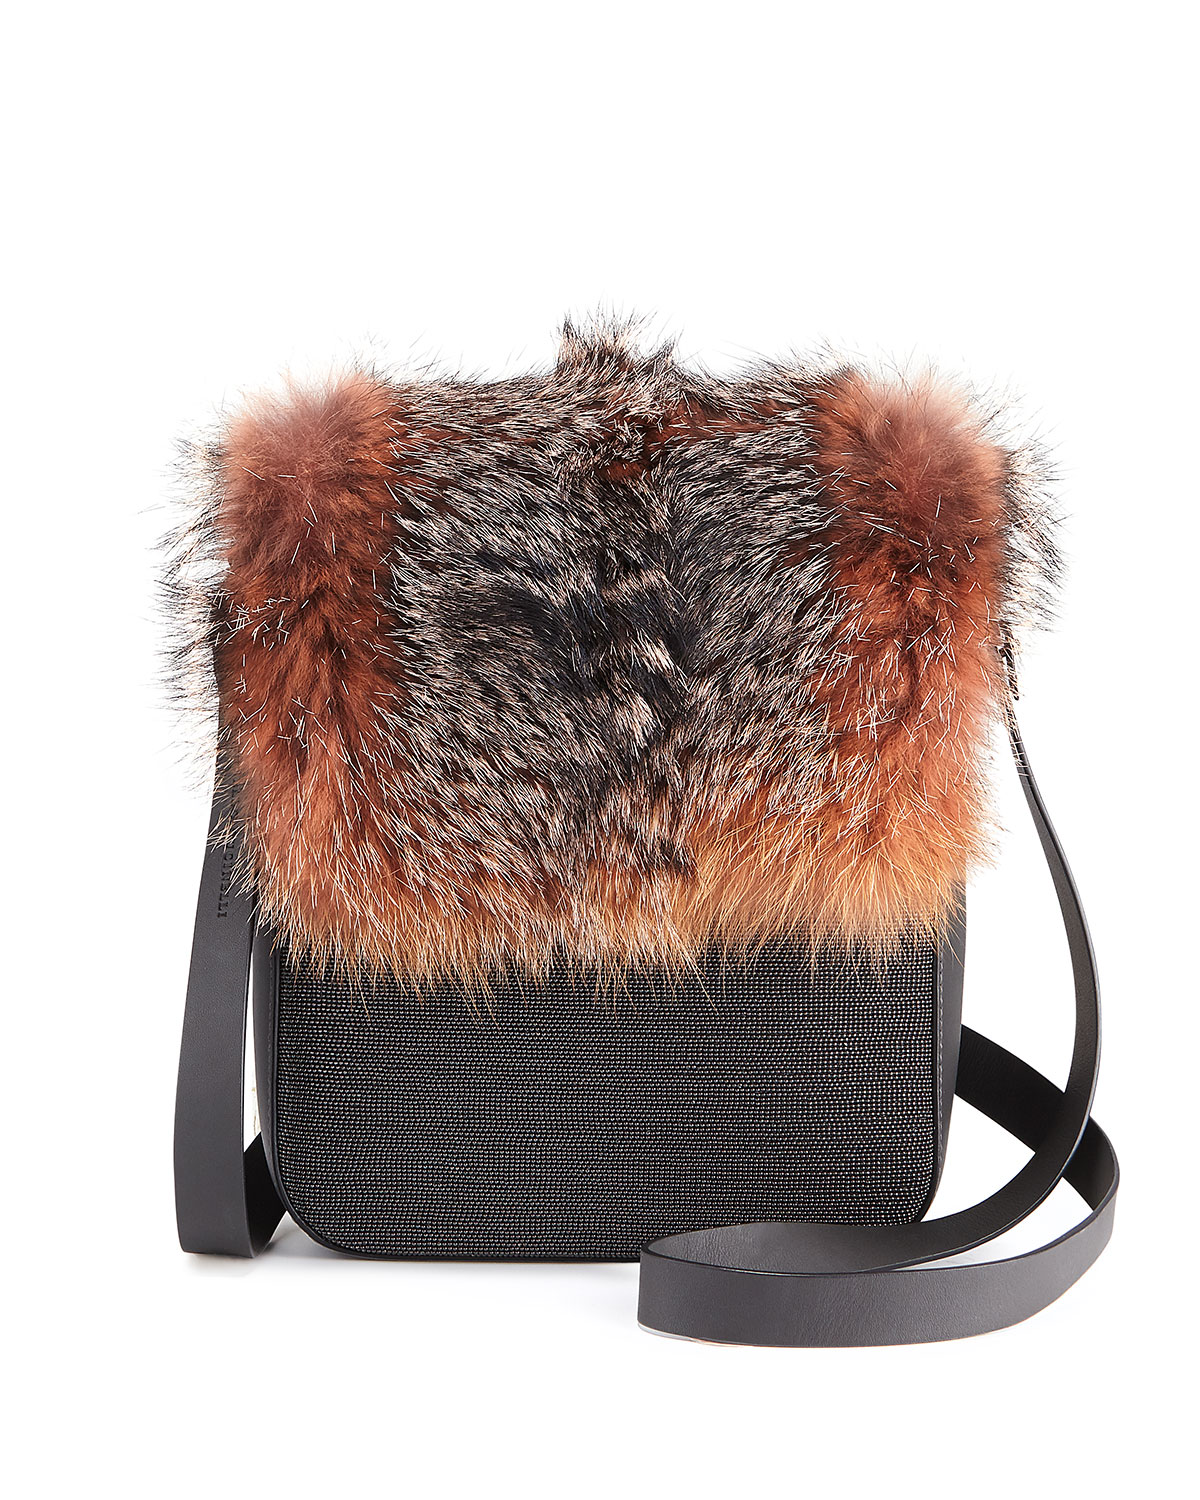 Fur and Monili Crossbody Messenger Bag